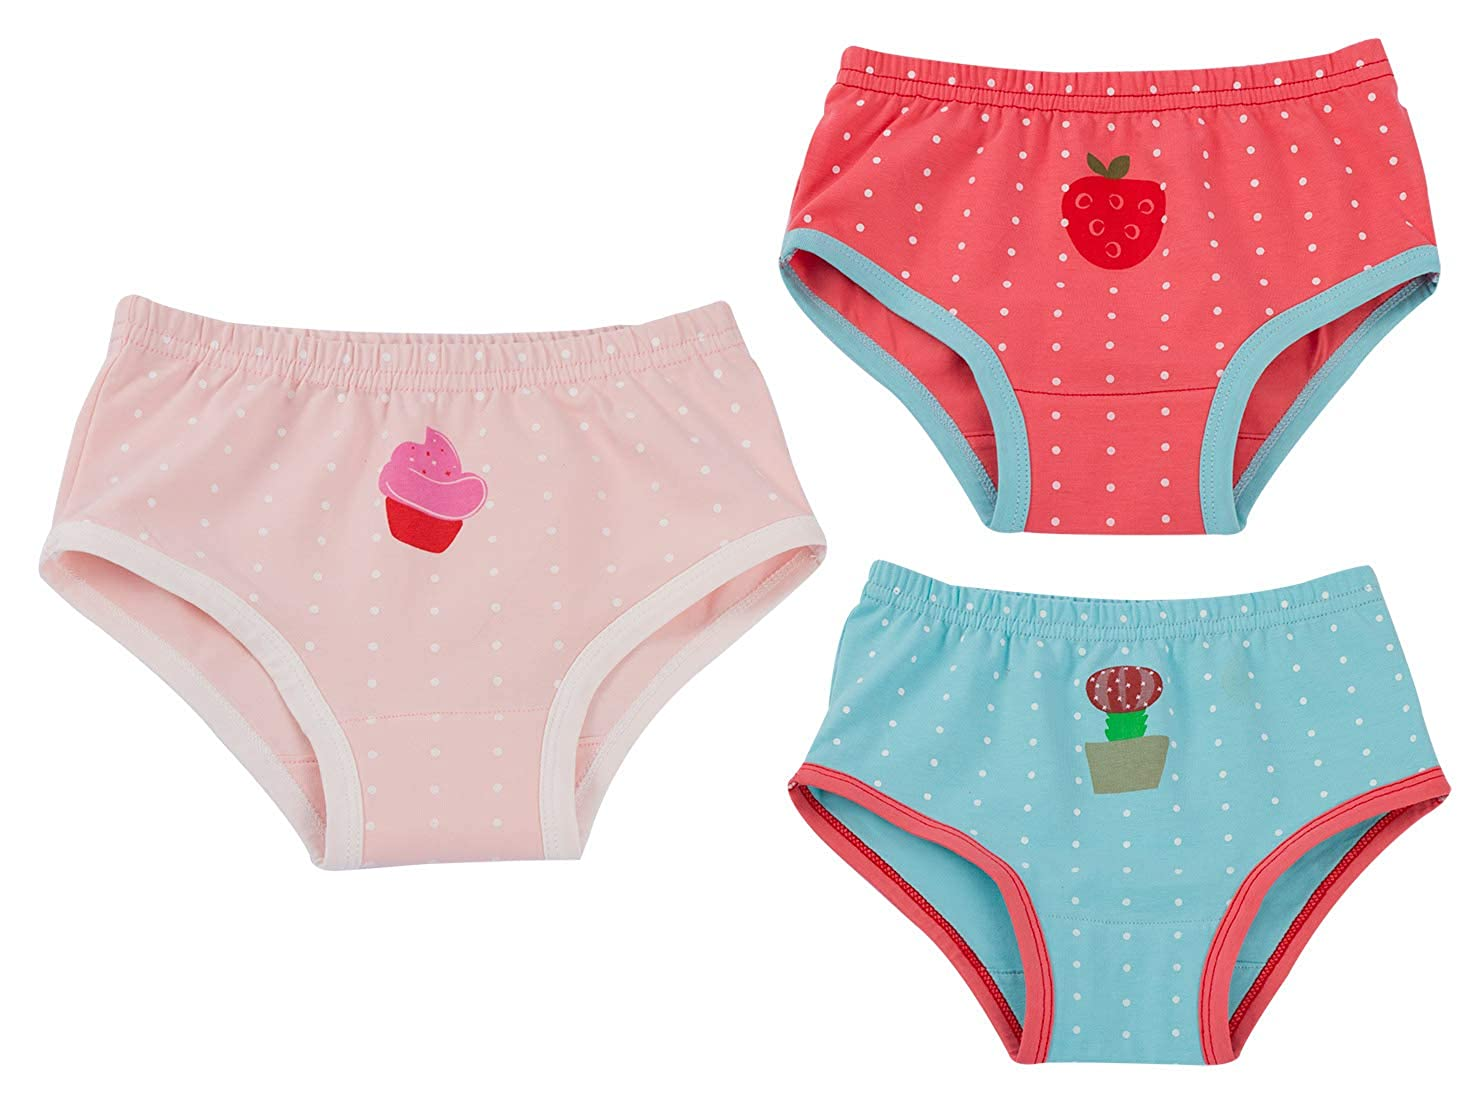 Joyo roy Unisex Baby Potty Training Undies Cotton Strawberry Diaper Pants Pack of 3 H101FLL0023-24